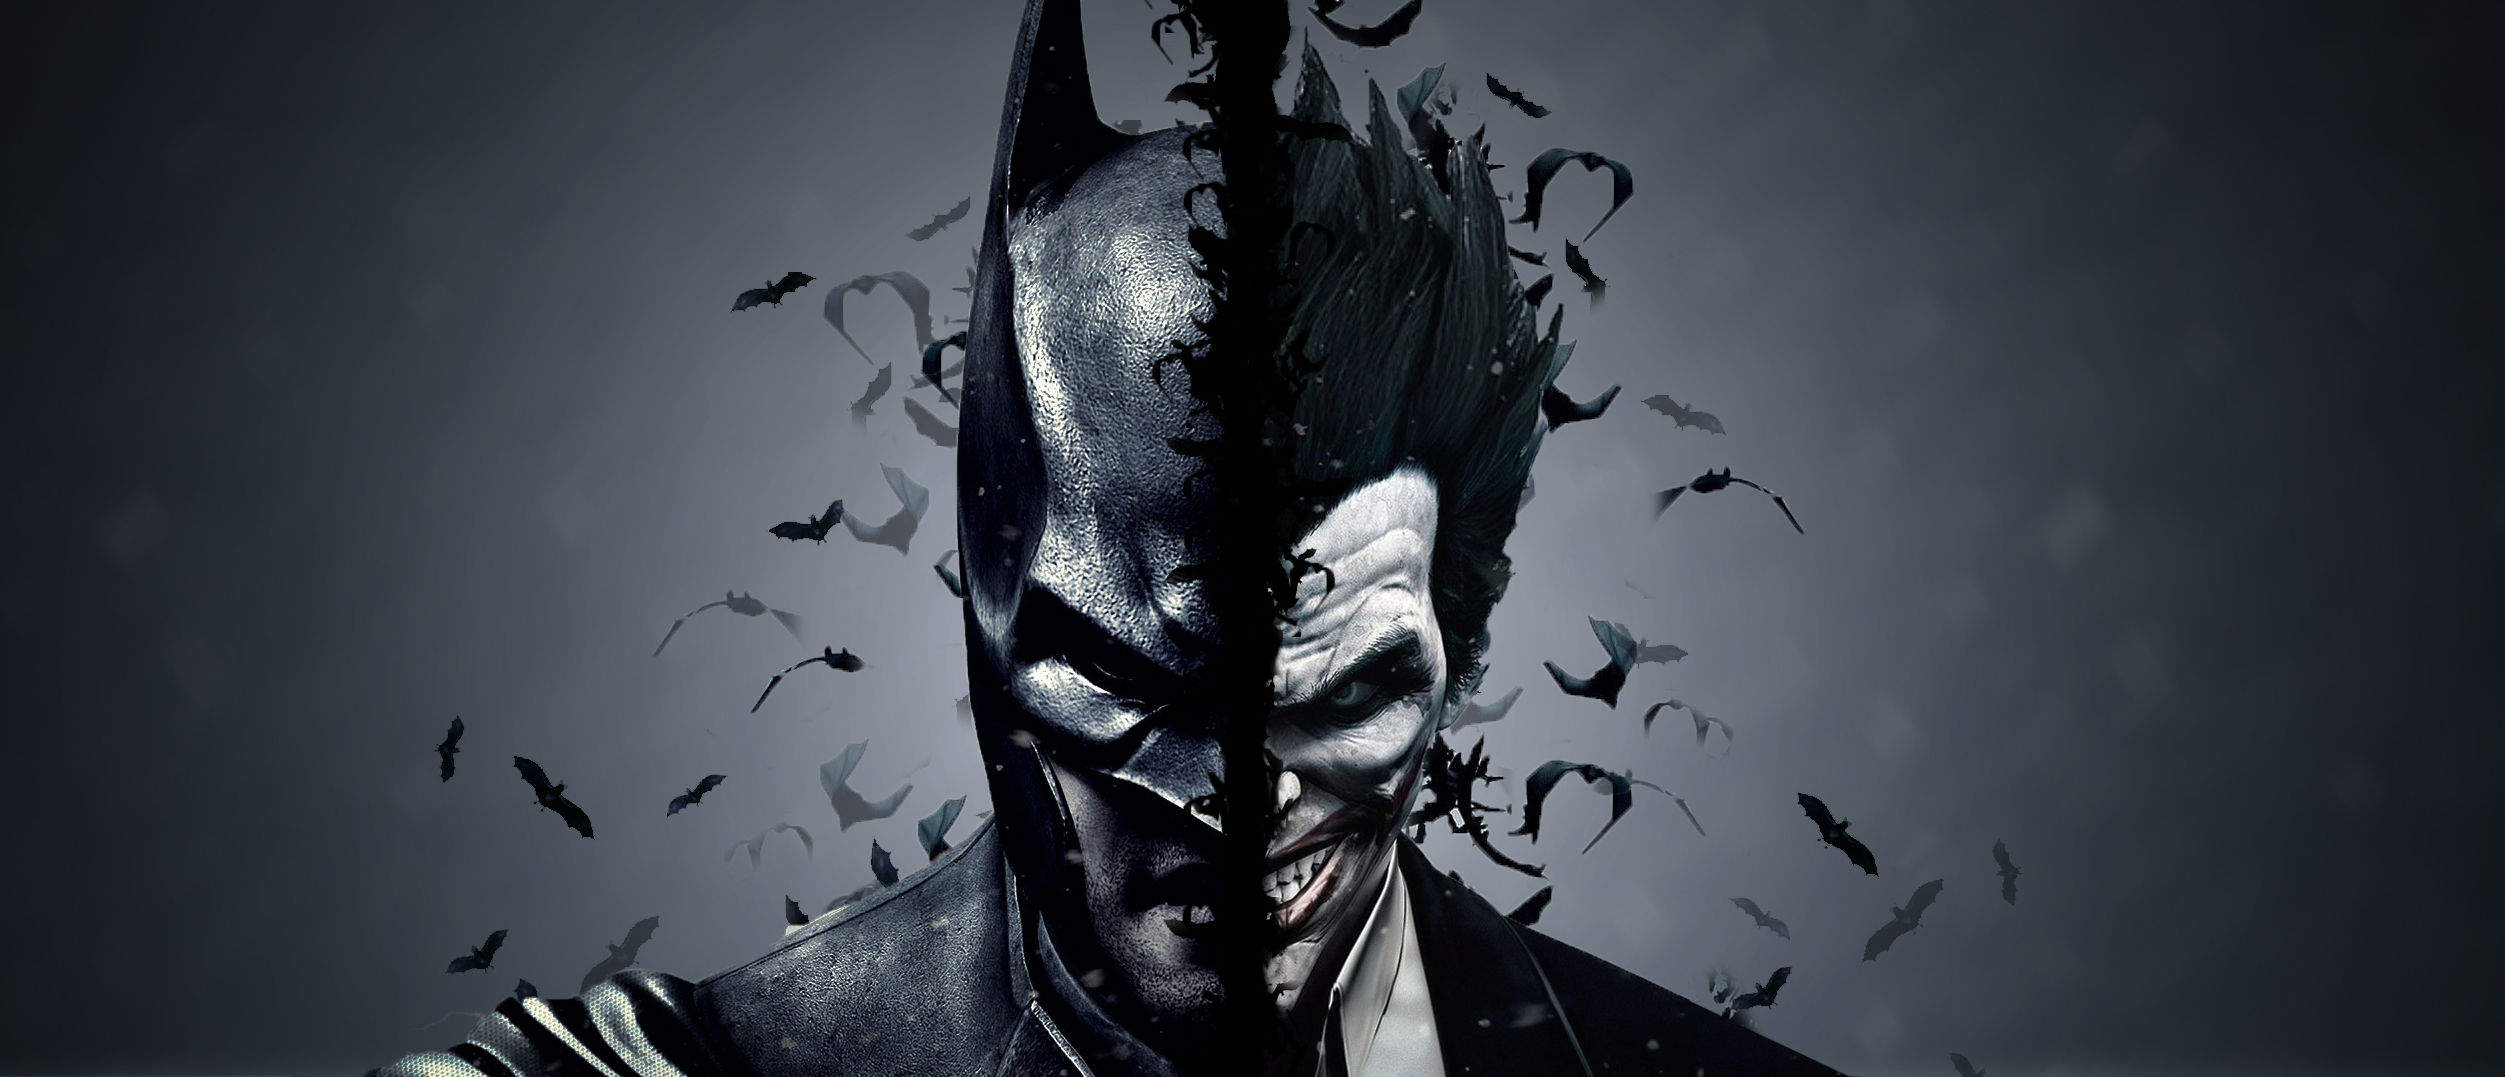 HQ Batman Wallpapers | File 218.43Kb